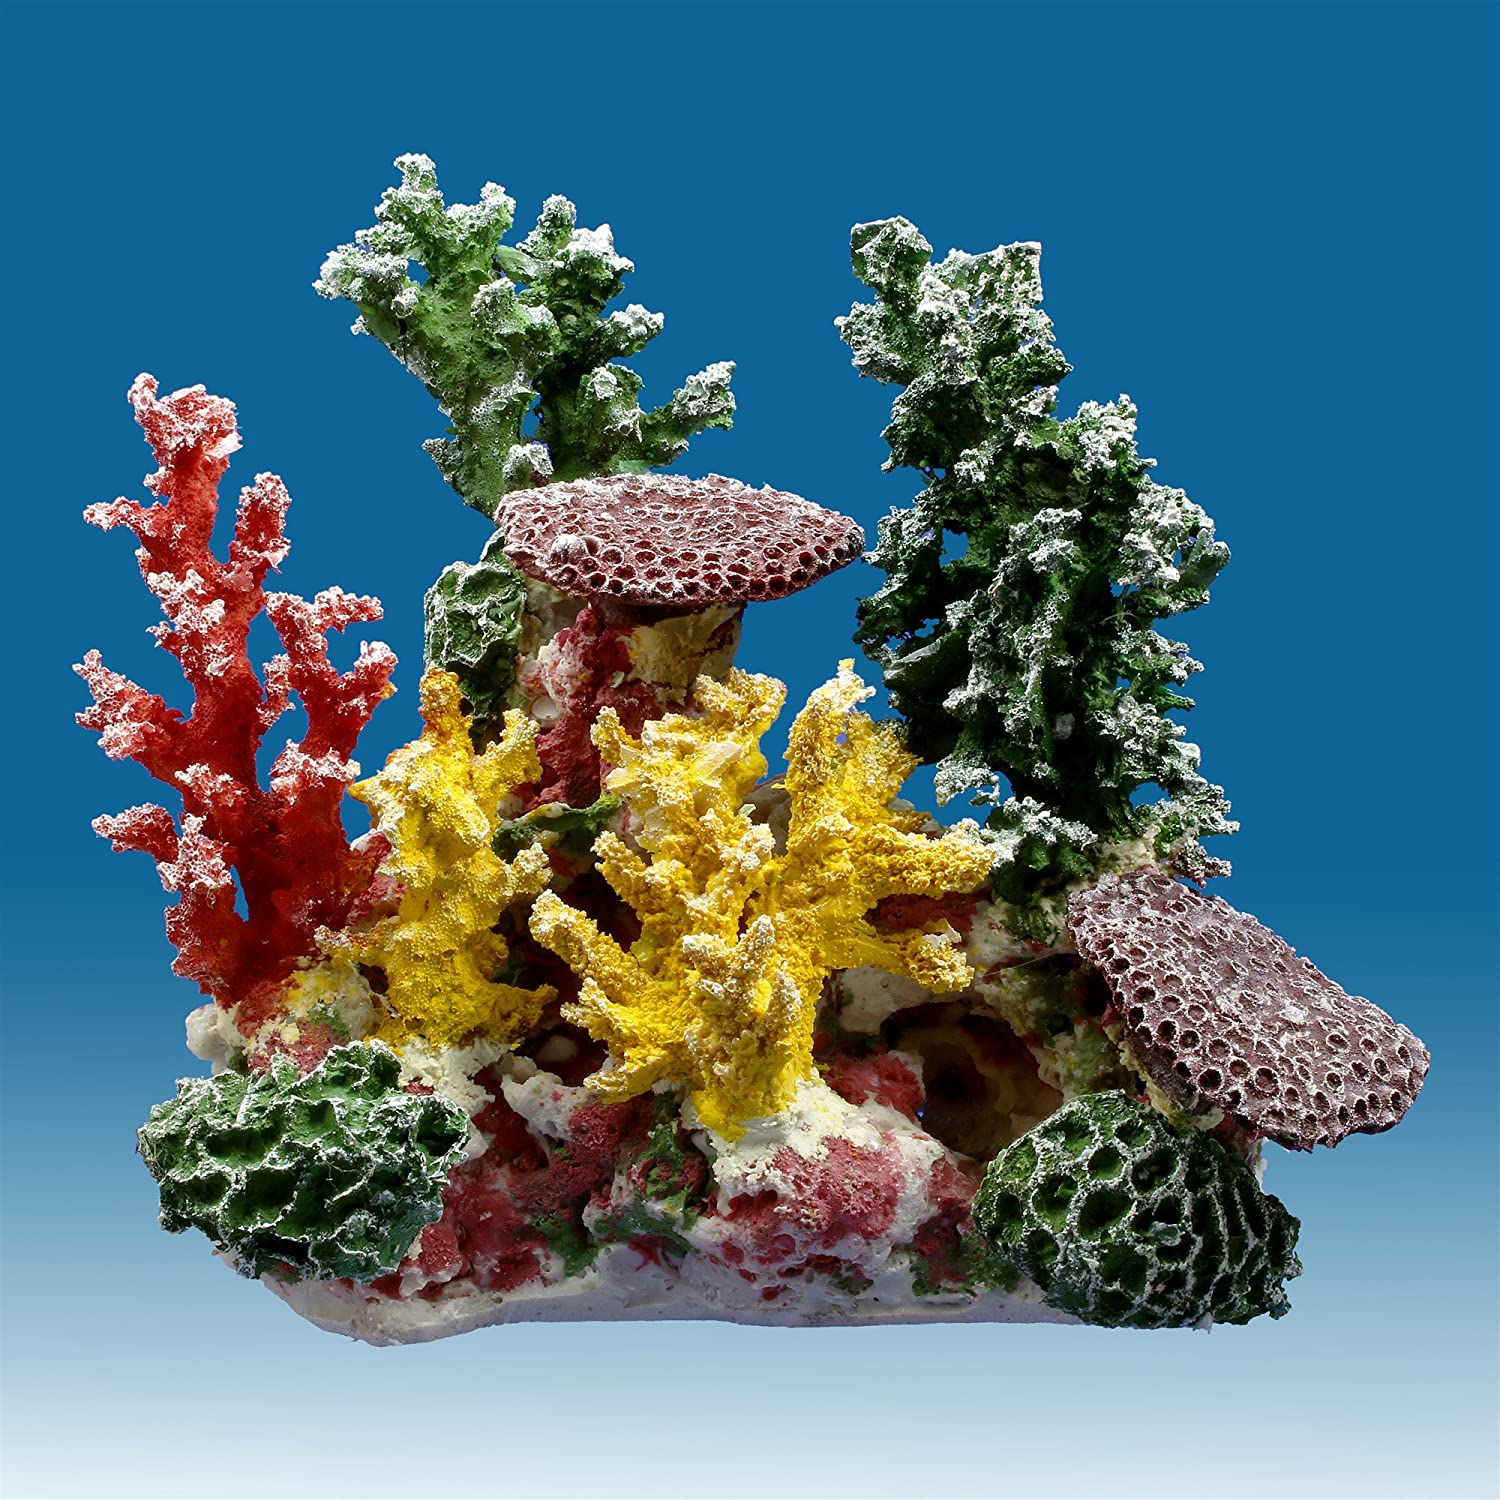 indoor with aquariums aquarium cor d effect itm decoration reef new coral ferns natural freshwater from aquaone decor